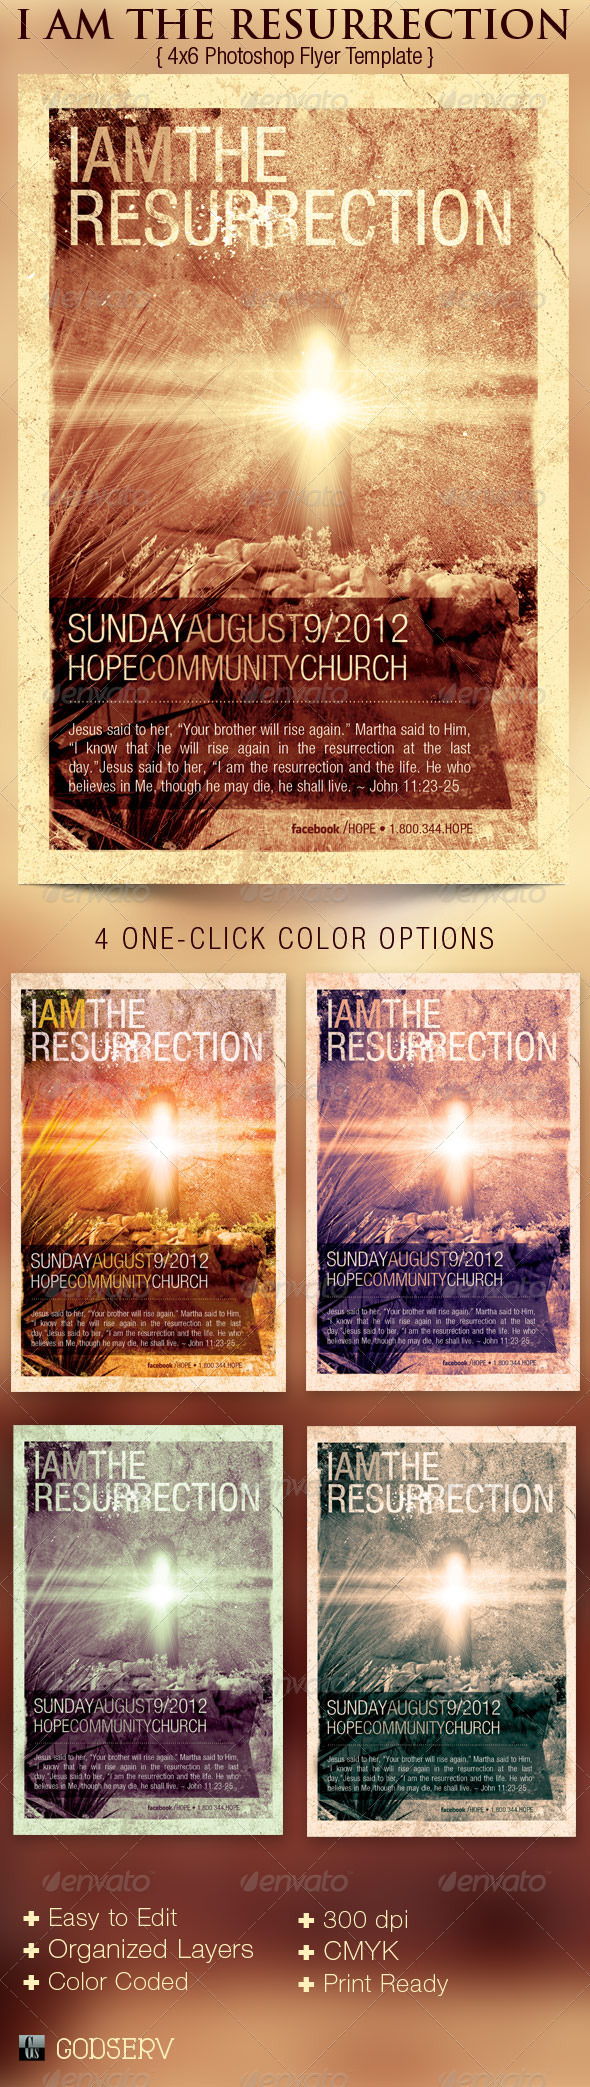 Resurrection Church Flyer Template - Church Flyers